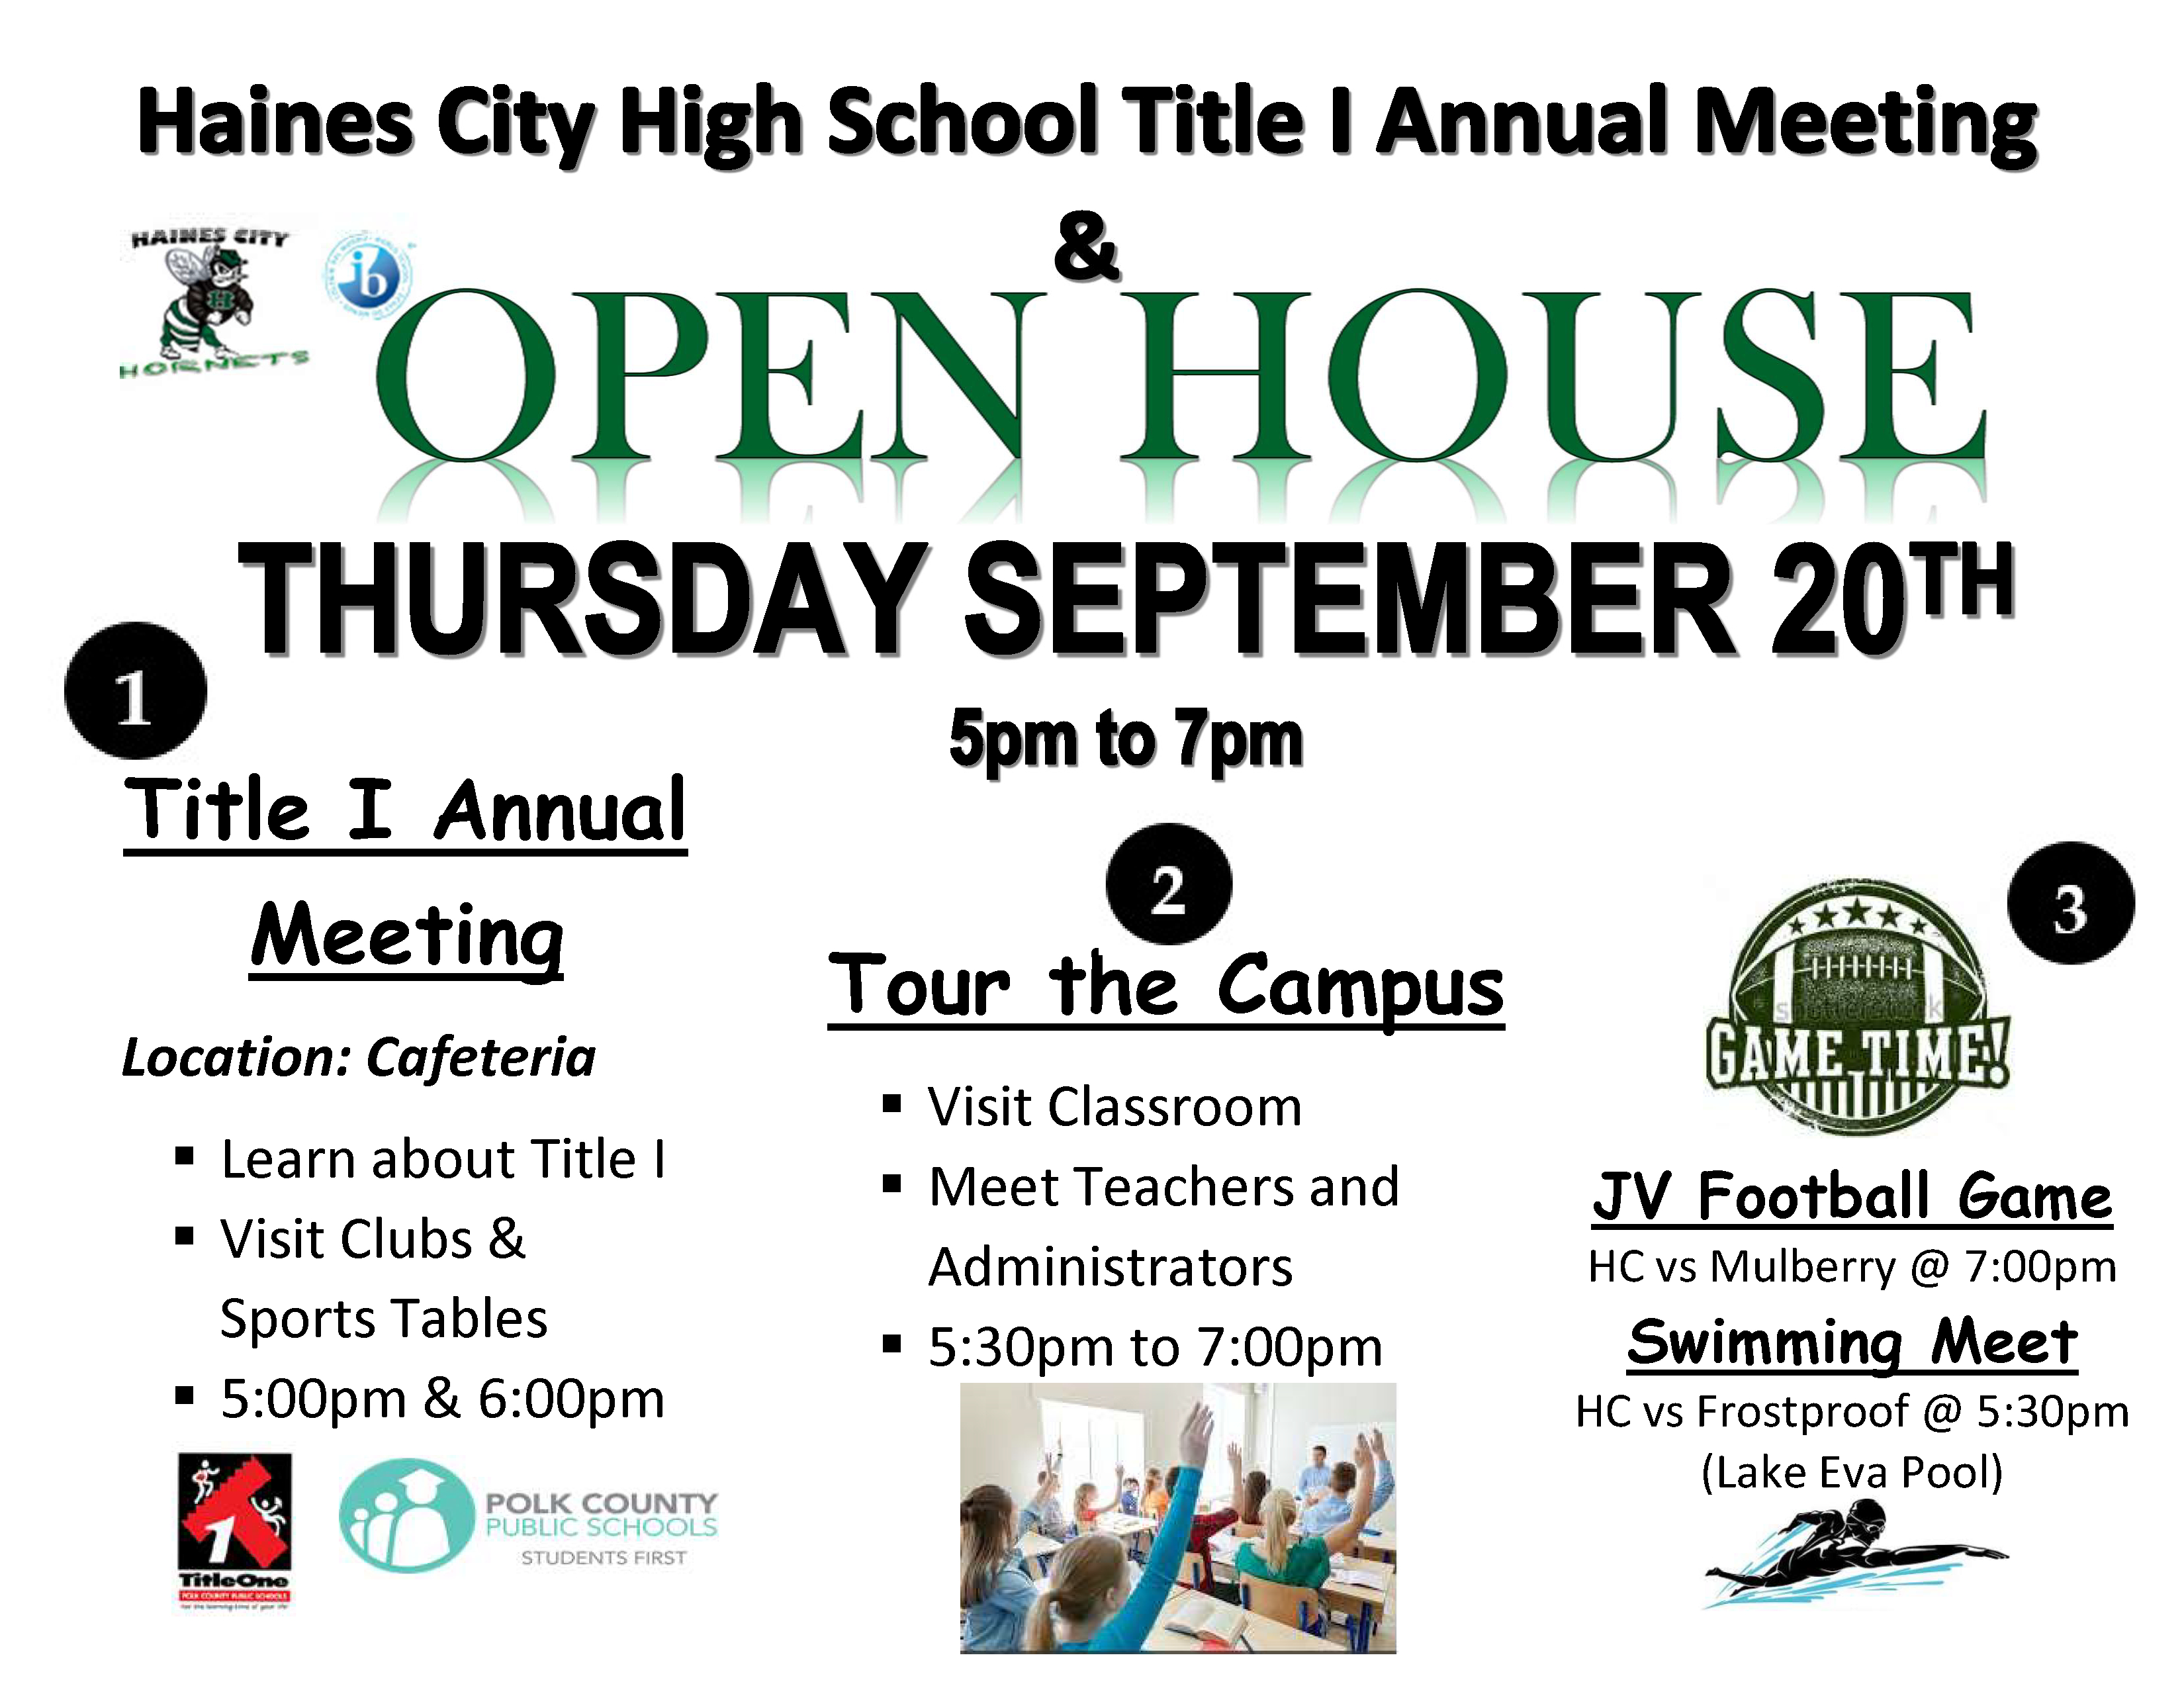 Annual Title I Meeting & Open House – Haines City High School regarding Haines City High School Bell Schedule